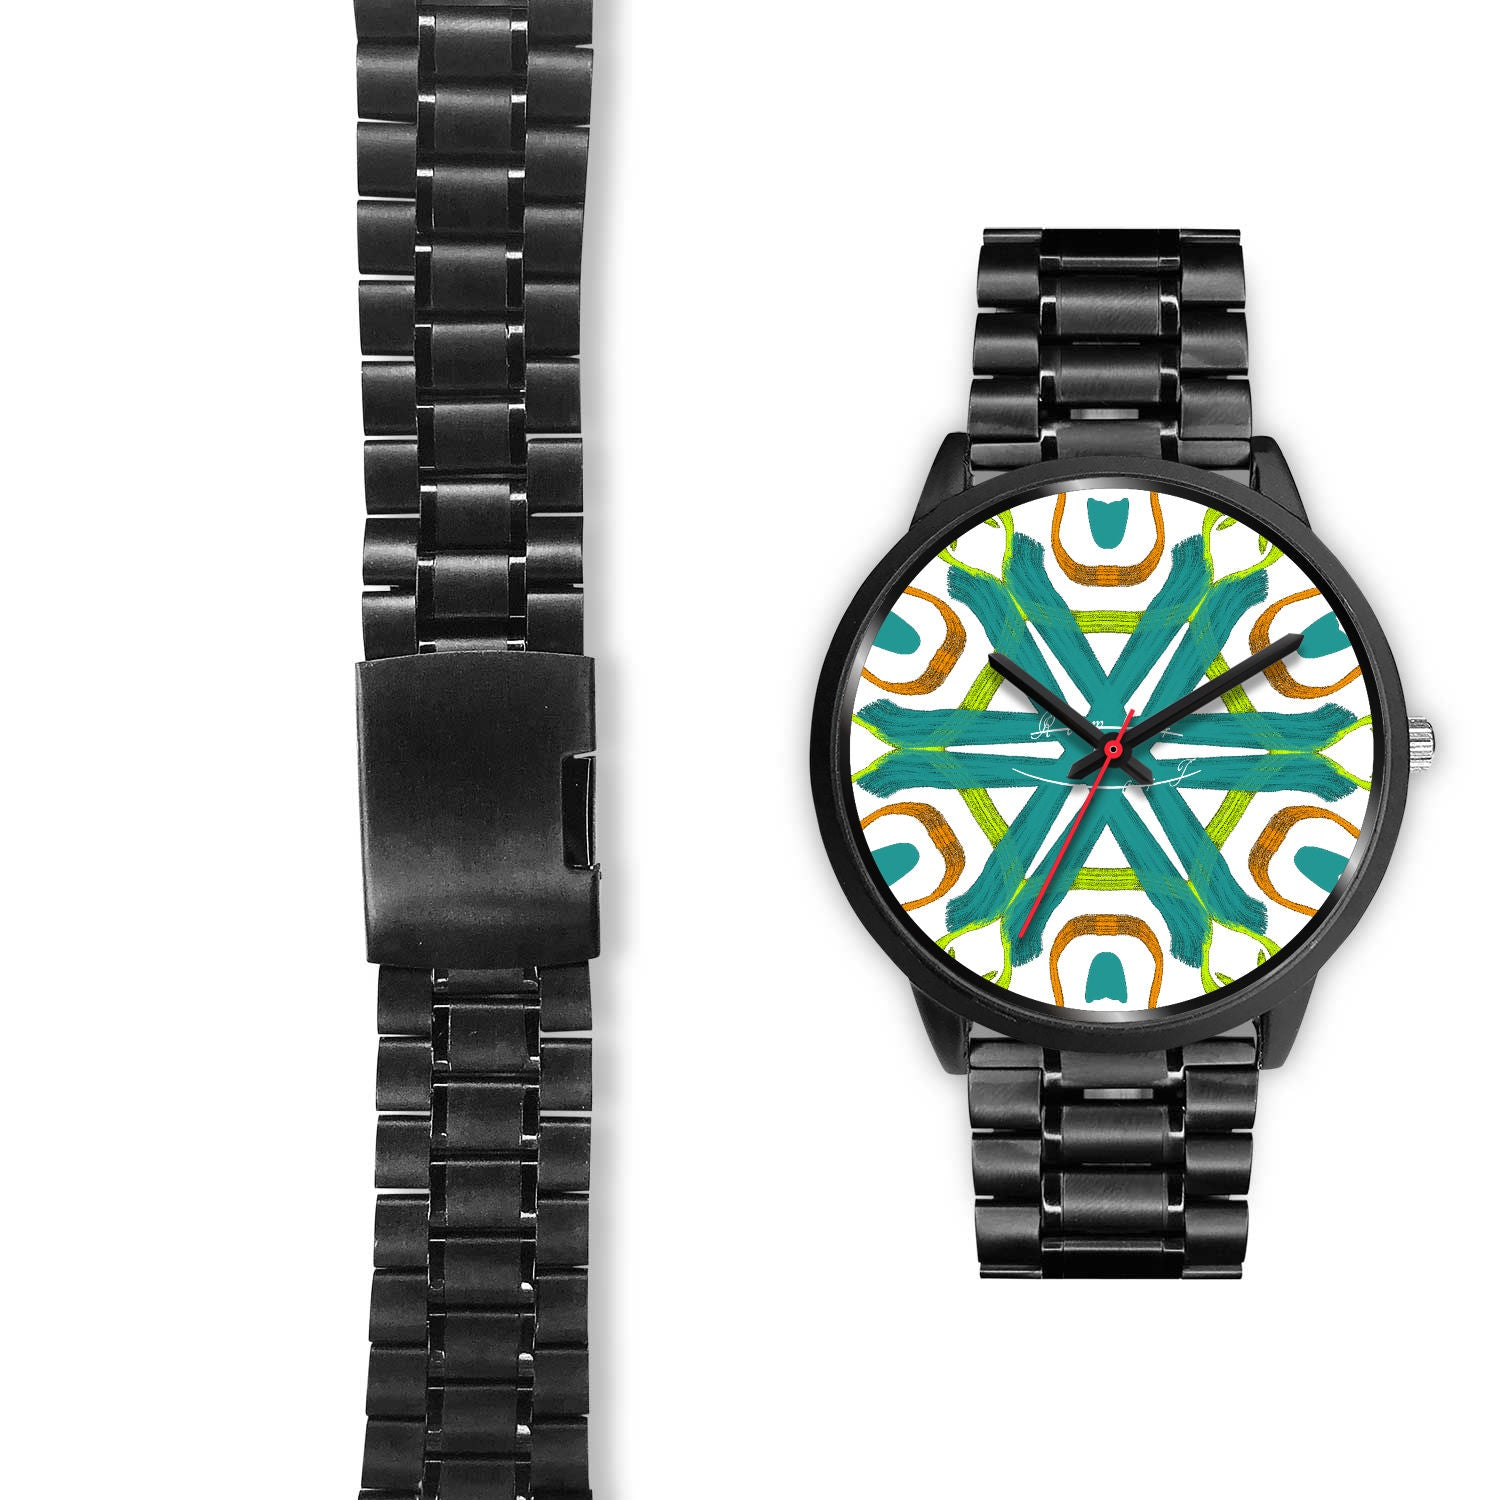 Dominion Handled Lightly - Black Metal Watch - By @remlor - Remlor Art